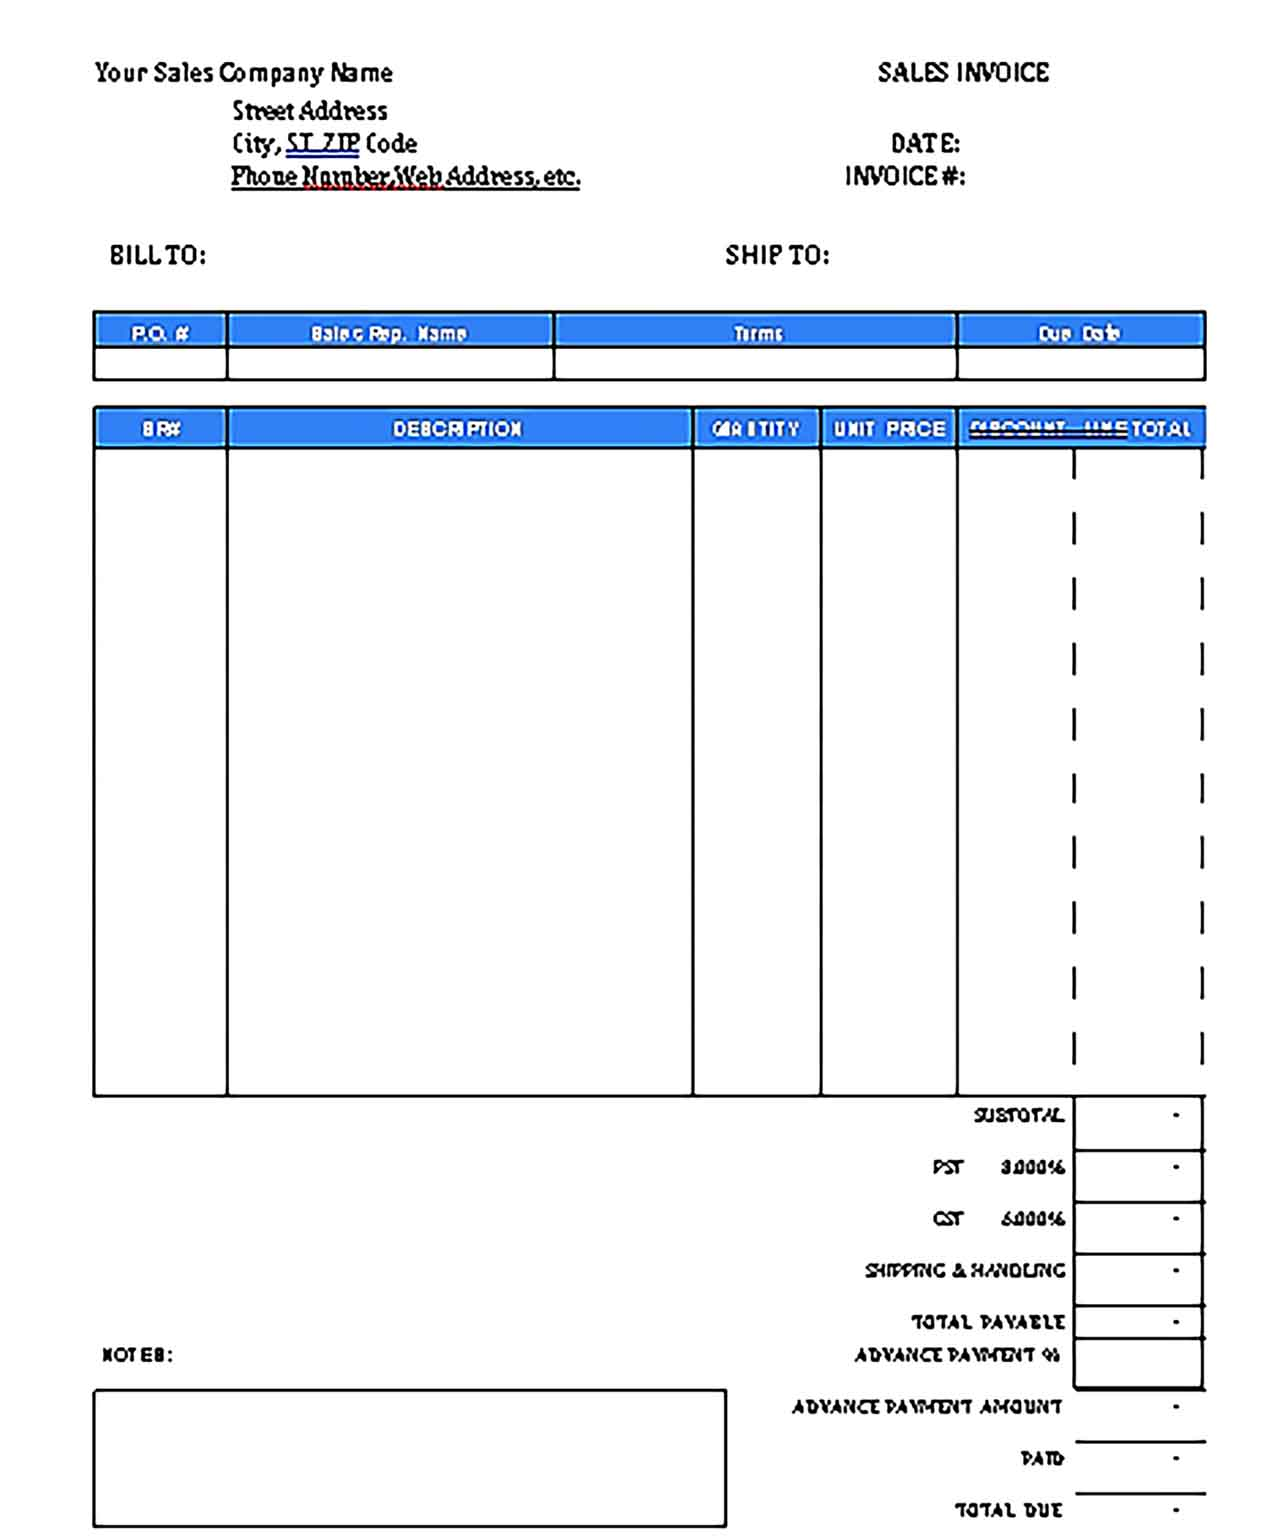 Sample Templates Advance Payment 1